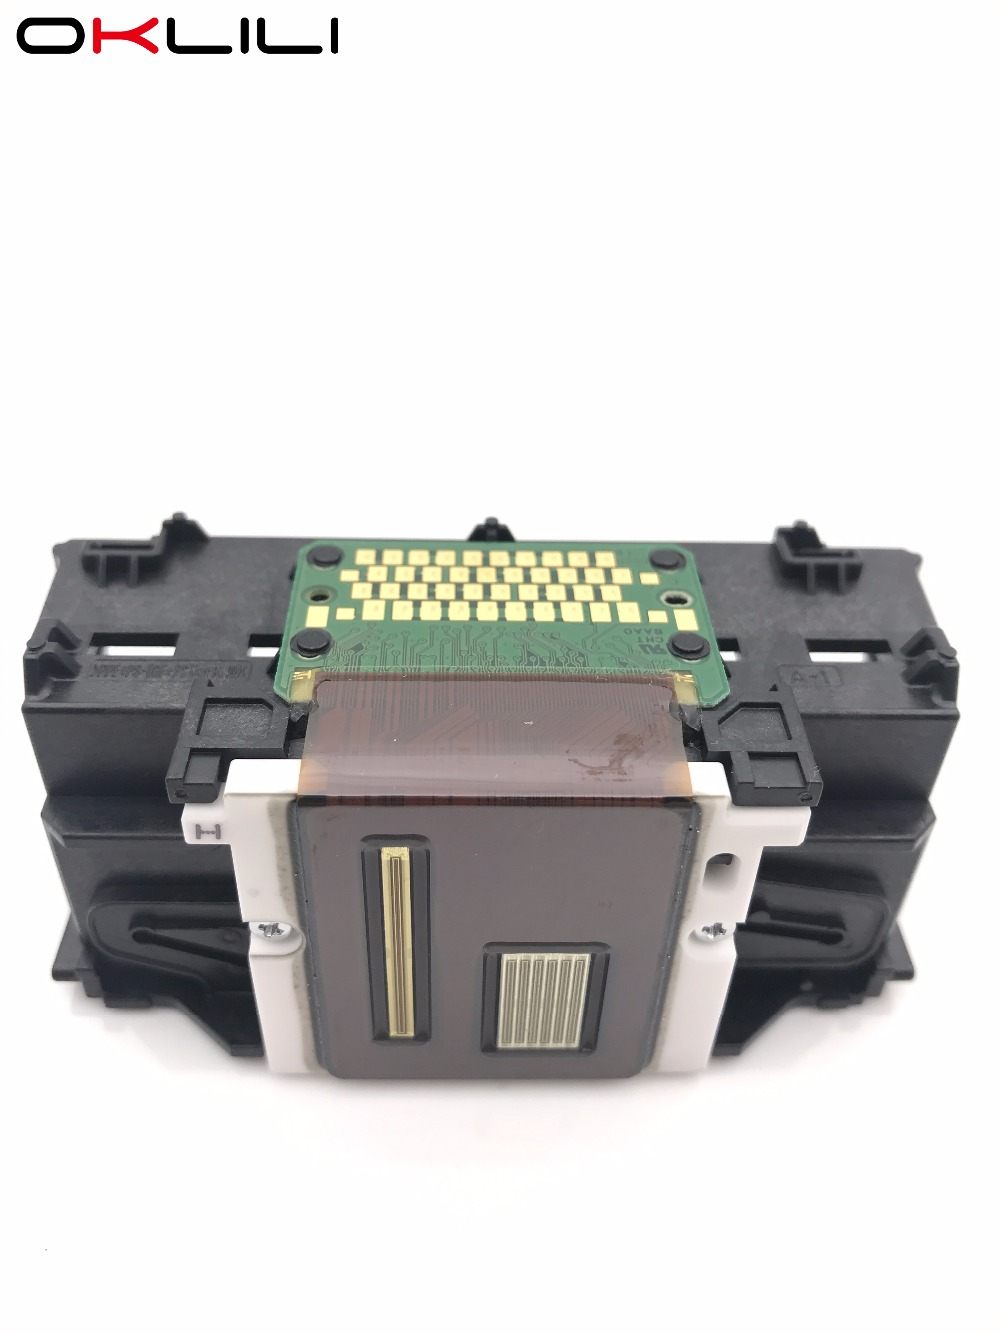 QY6-0089 Printhead Print Head Printer Head for Canon PIXMA TS5050 TS5051 TS5053 TS5055 TS5070 TS5080 TS6050 TS6051 TS6052 TS6080 genuine brand new qy6 0084 printhead print head for canon pixma pro 100 printer